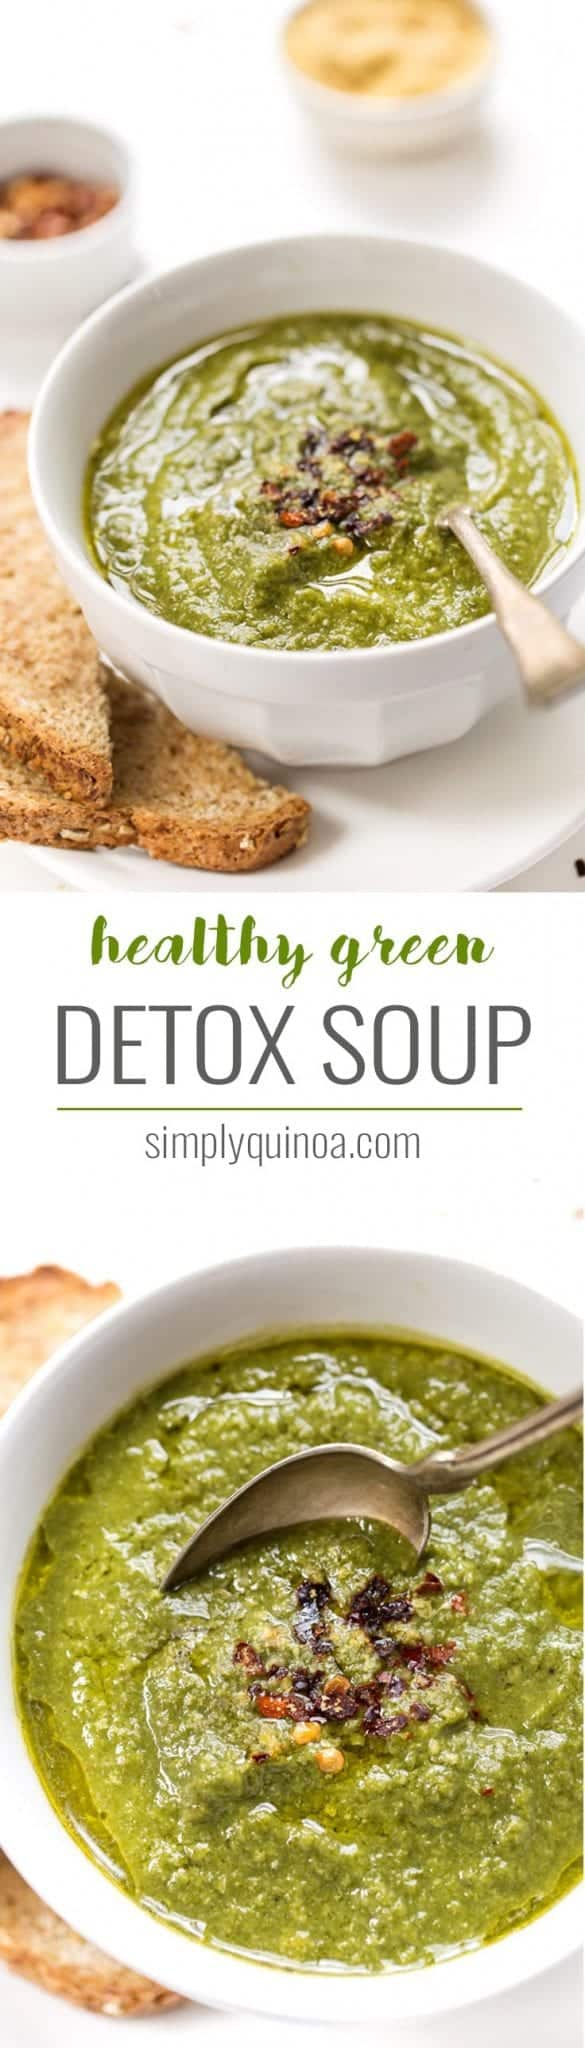 a healthy green detox soup